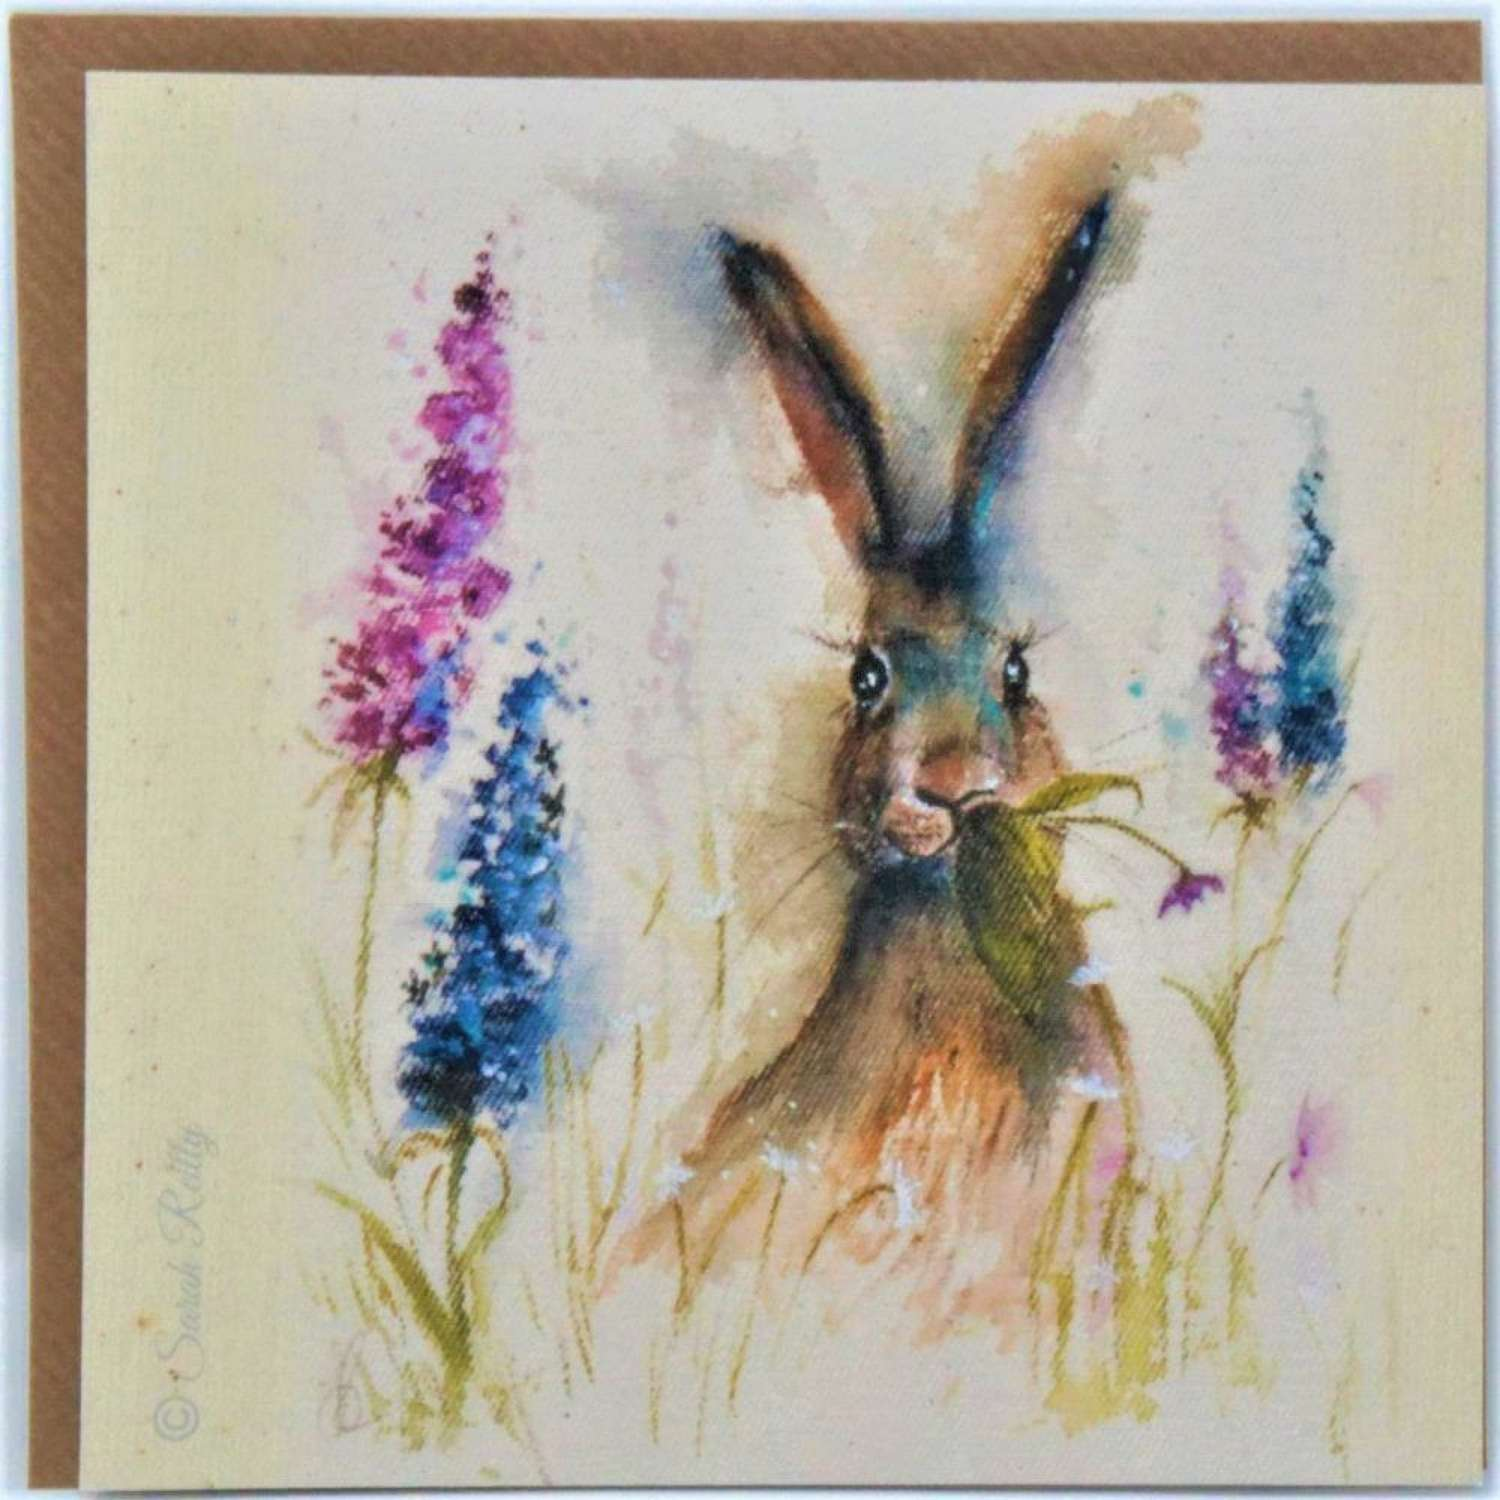 Love Country - Munching in the Flower Garden - by Sarah Reilly